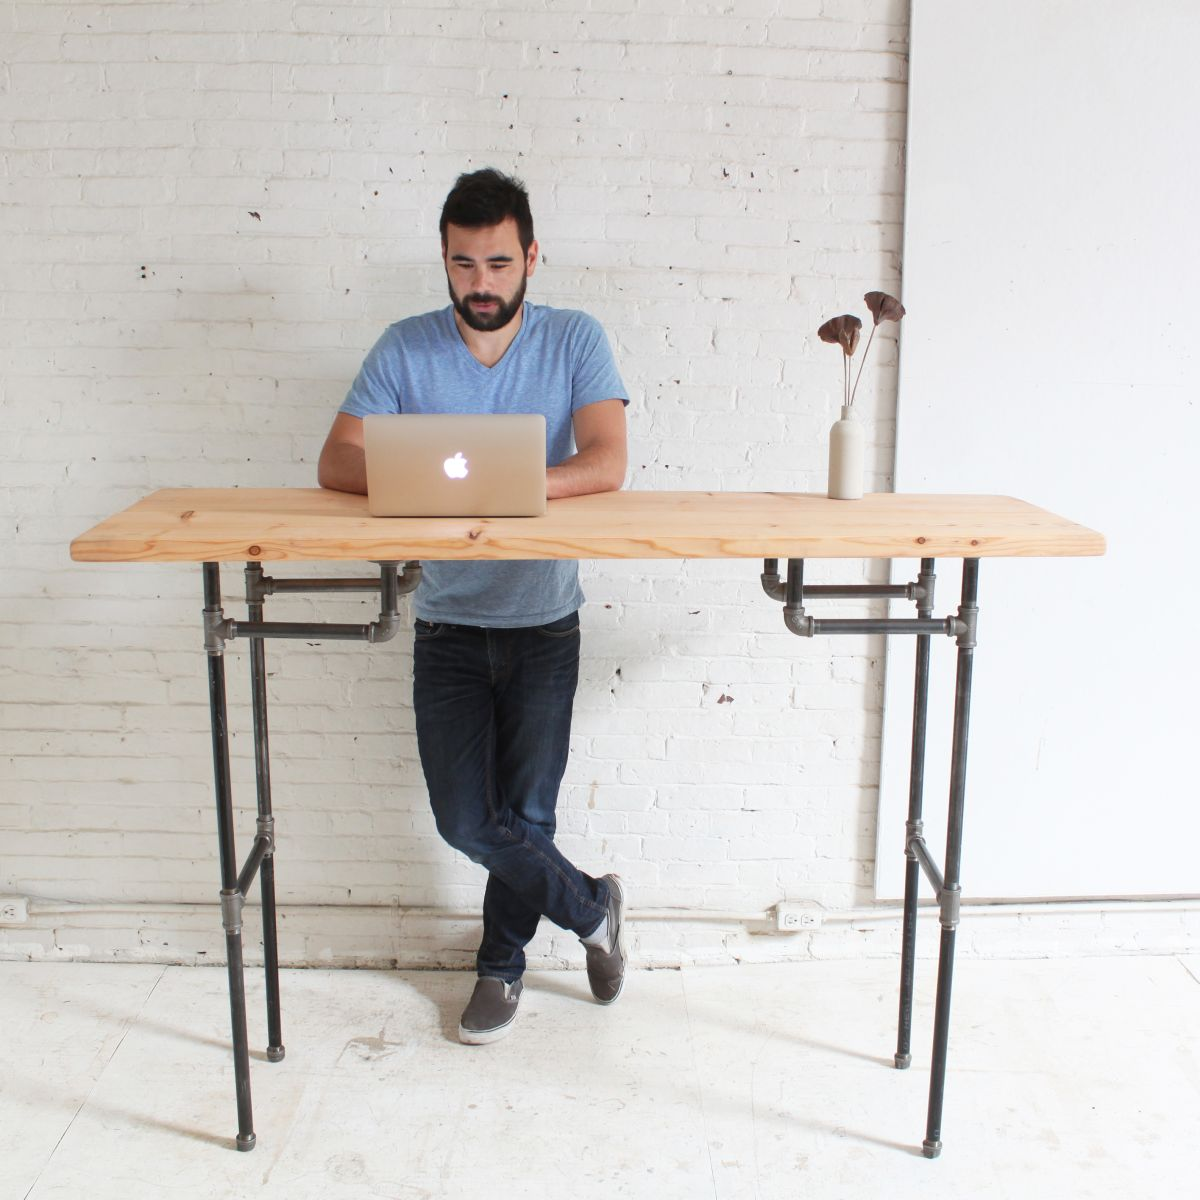 Diy Desktop Standing Desk Diy Plumbers Pipe Standing Desk